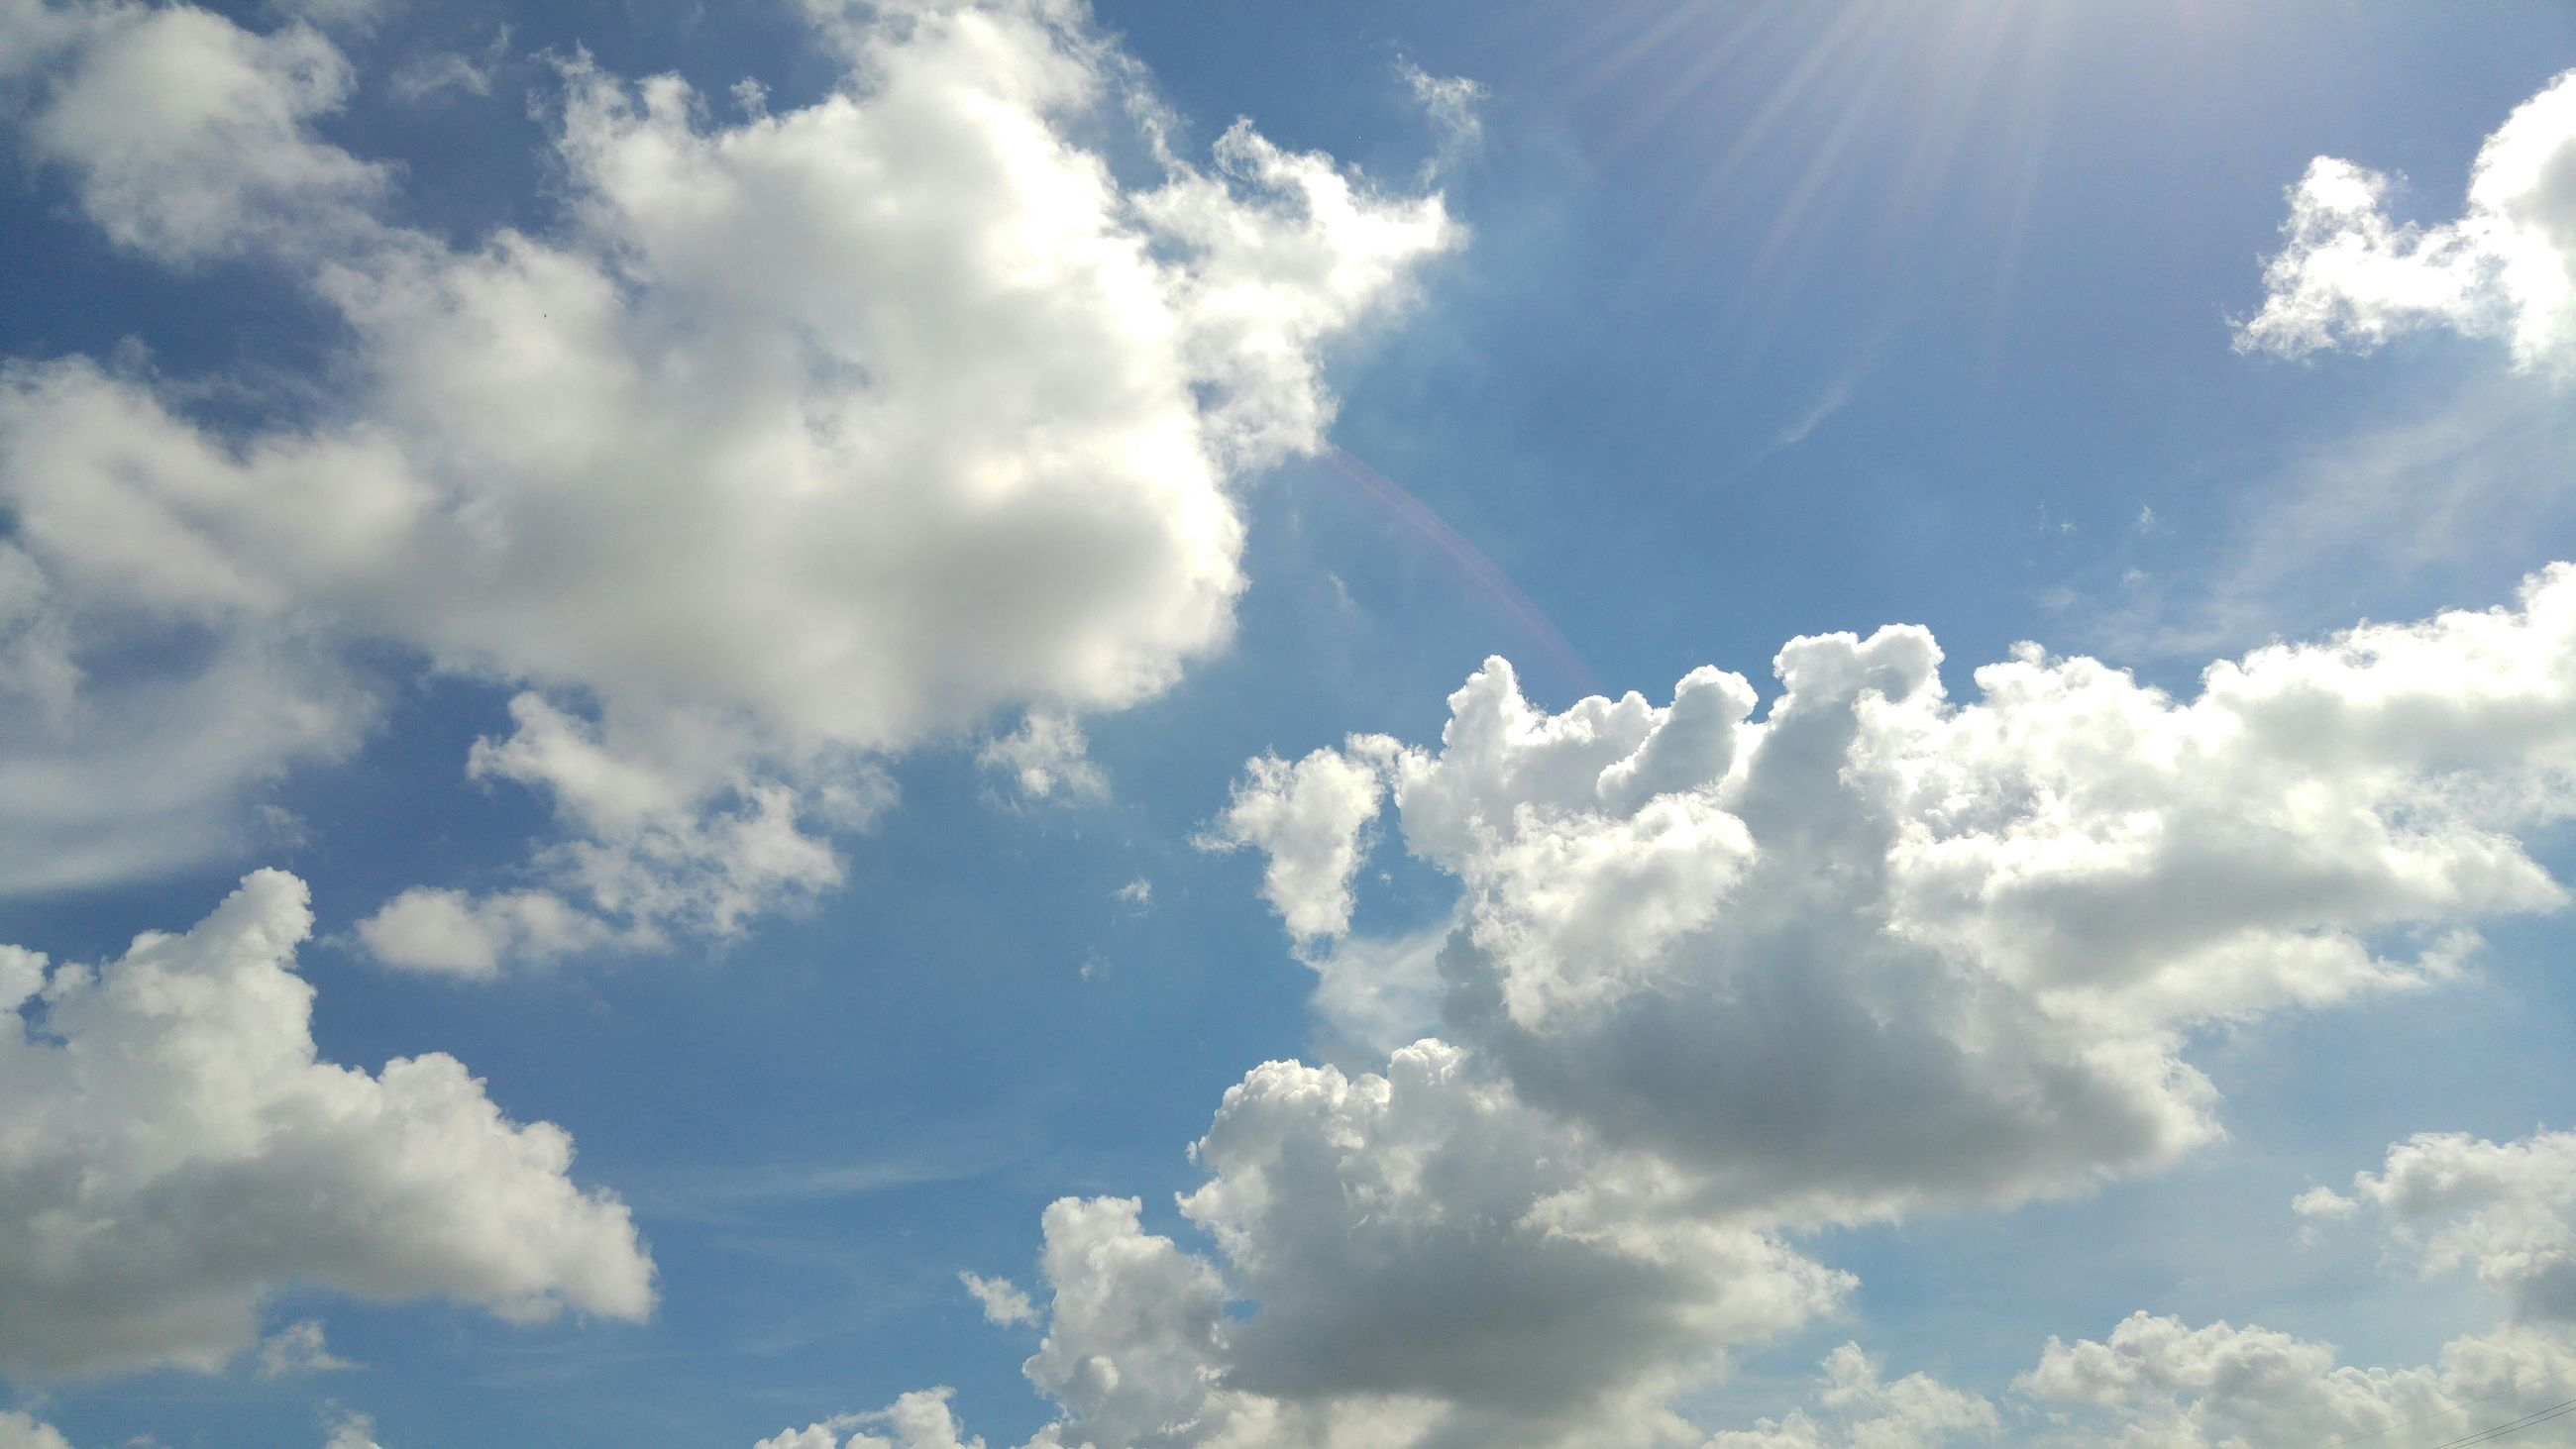 sky, beauty in nature, low angle view, cloud - sky, sky only, scenics, tranquility, blue, nature, tranquil scene, cloudscape, sunbeam, backgrounds, sunlight, cloud, white color, idyllic, cloudy, day, full frame